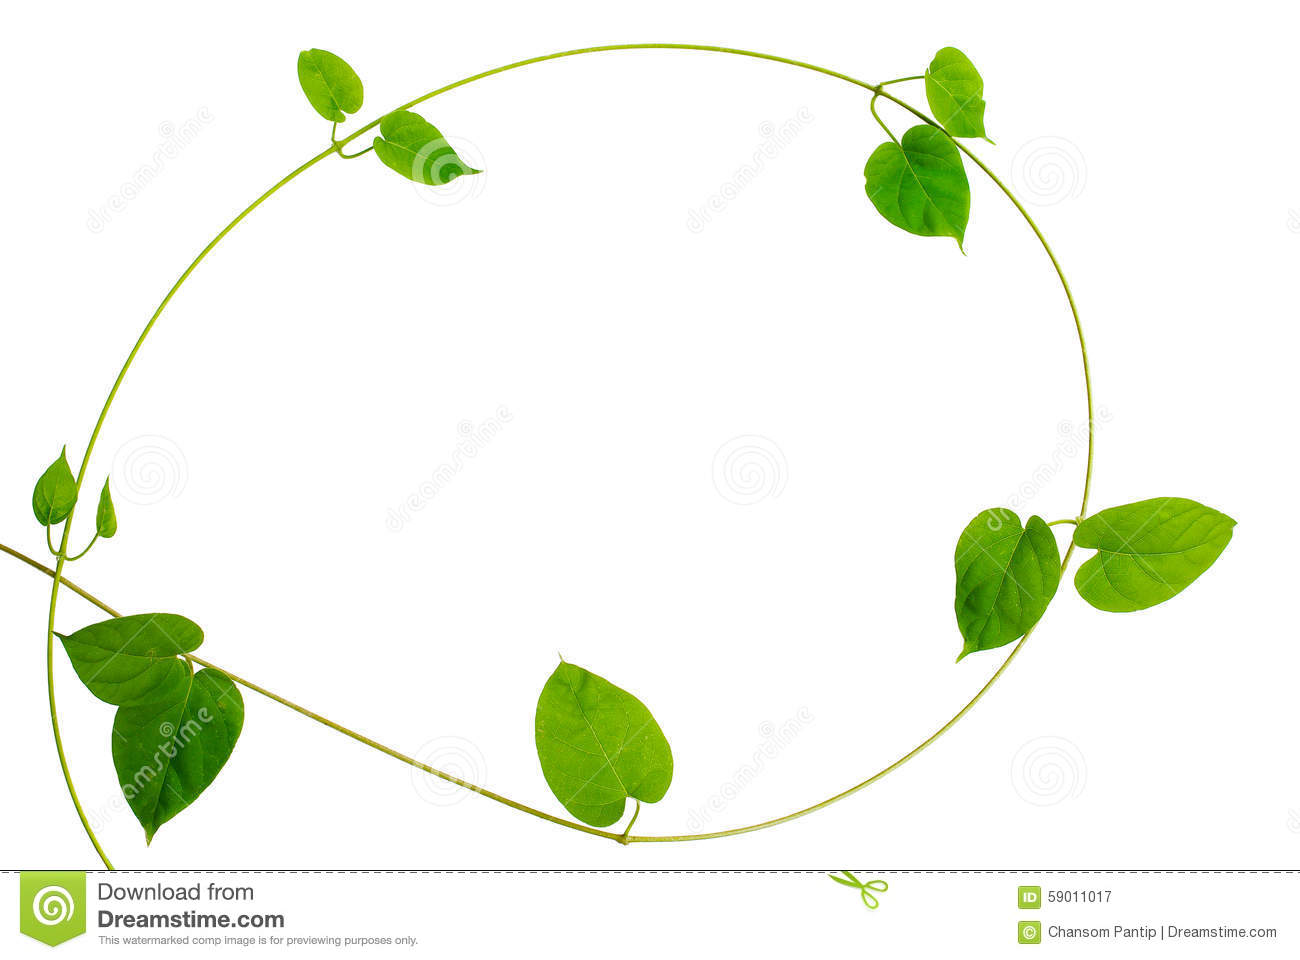 Frame of heart shaped green leaf vine on white background stock frame of heart shaped green leaf vine on white background mightylinksfo